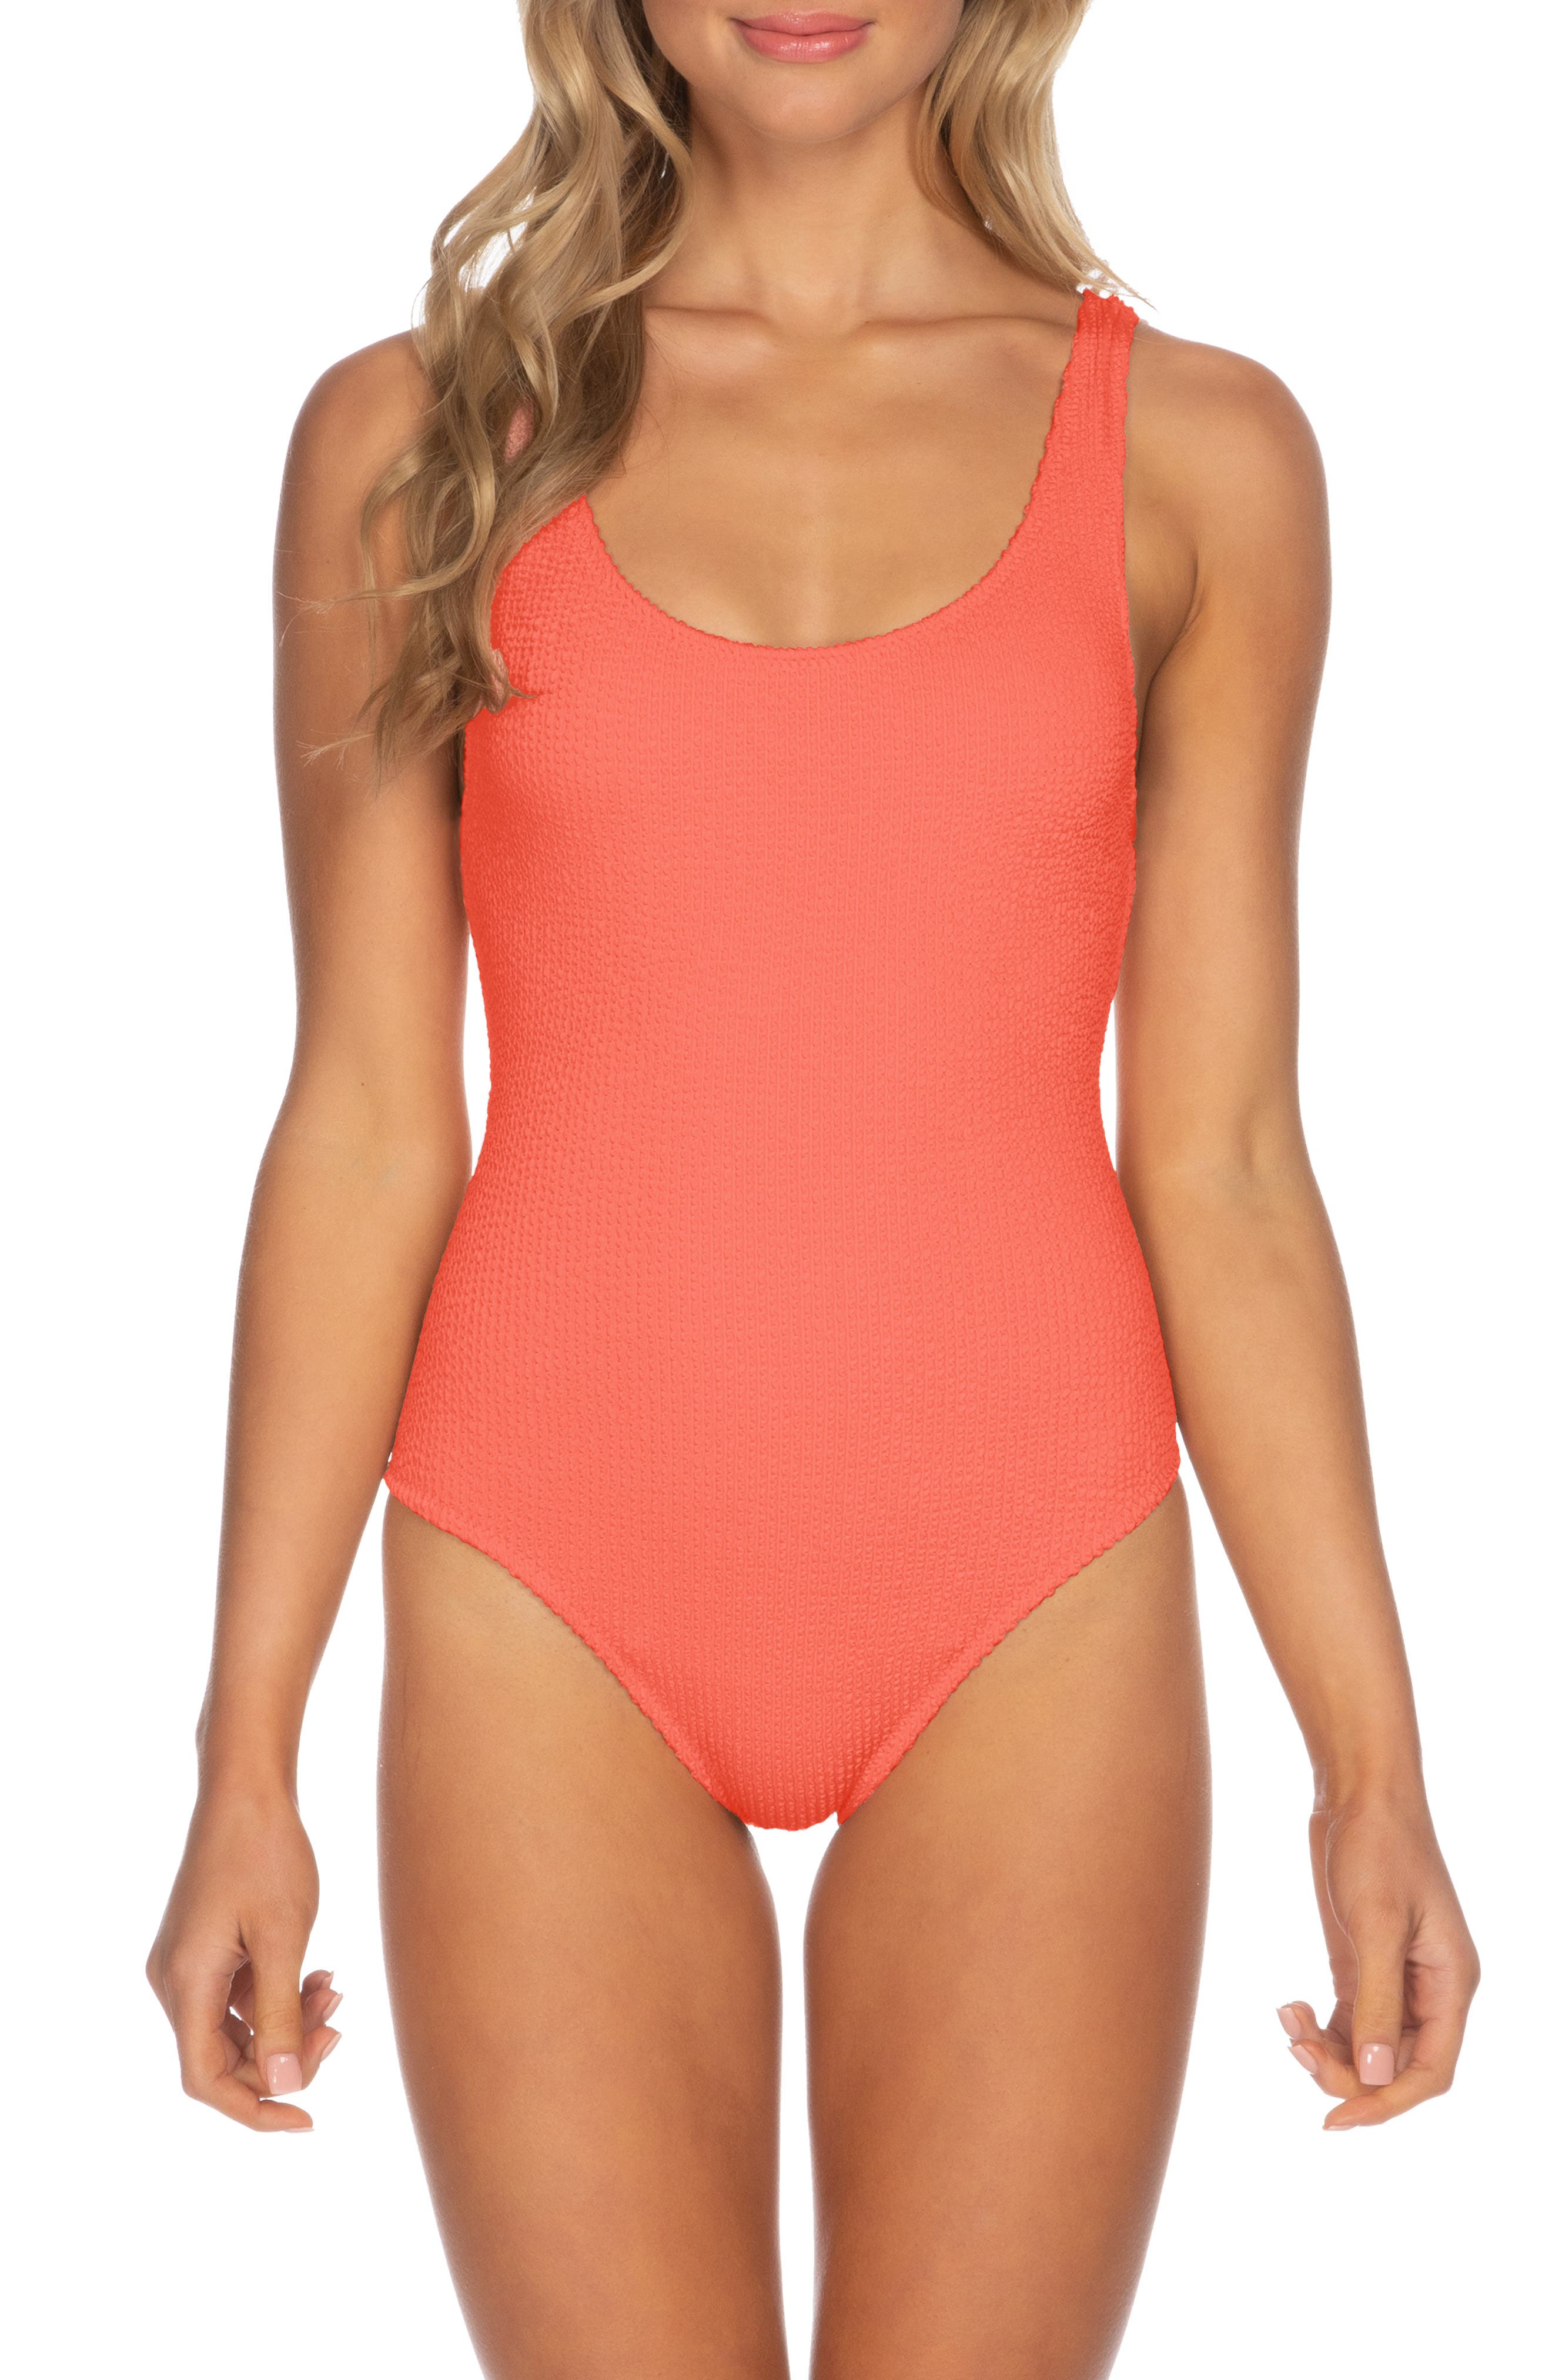 Isabella Rose Pucker Up Seersucker One-Piece Swim Suit, Coral